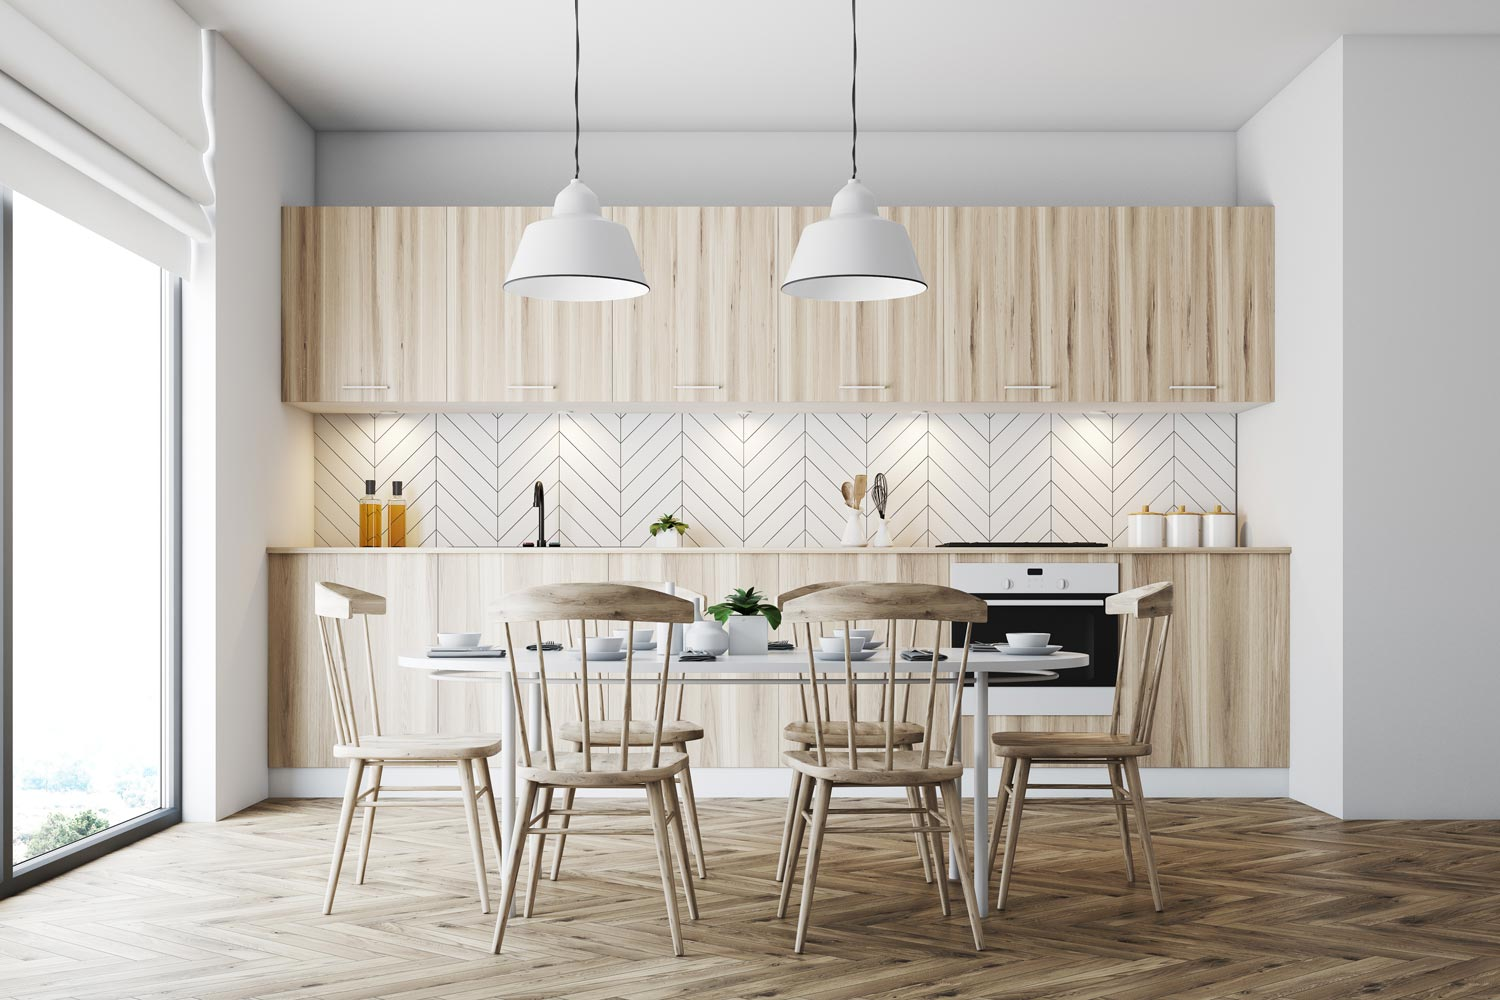 herringbone-tiles-kitchen-backsplash-ideas